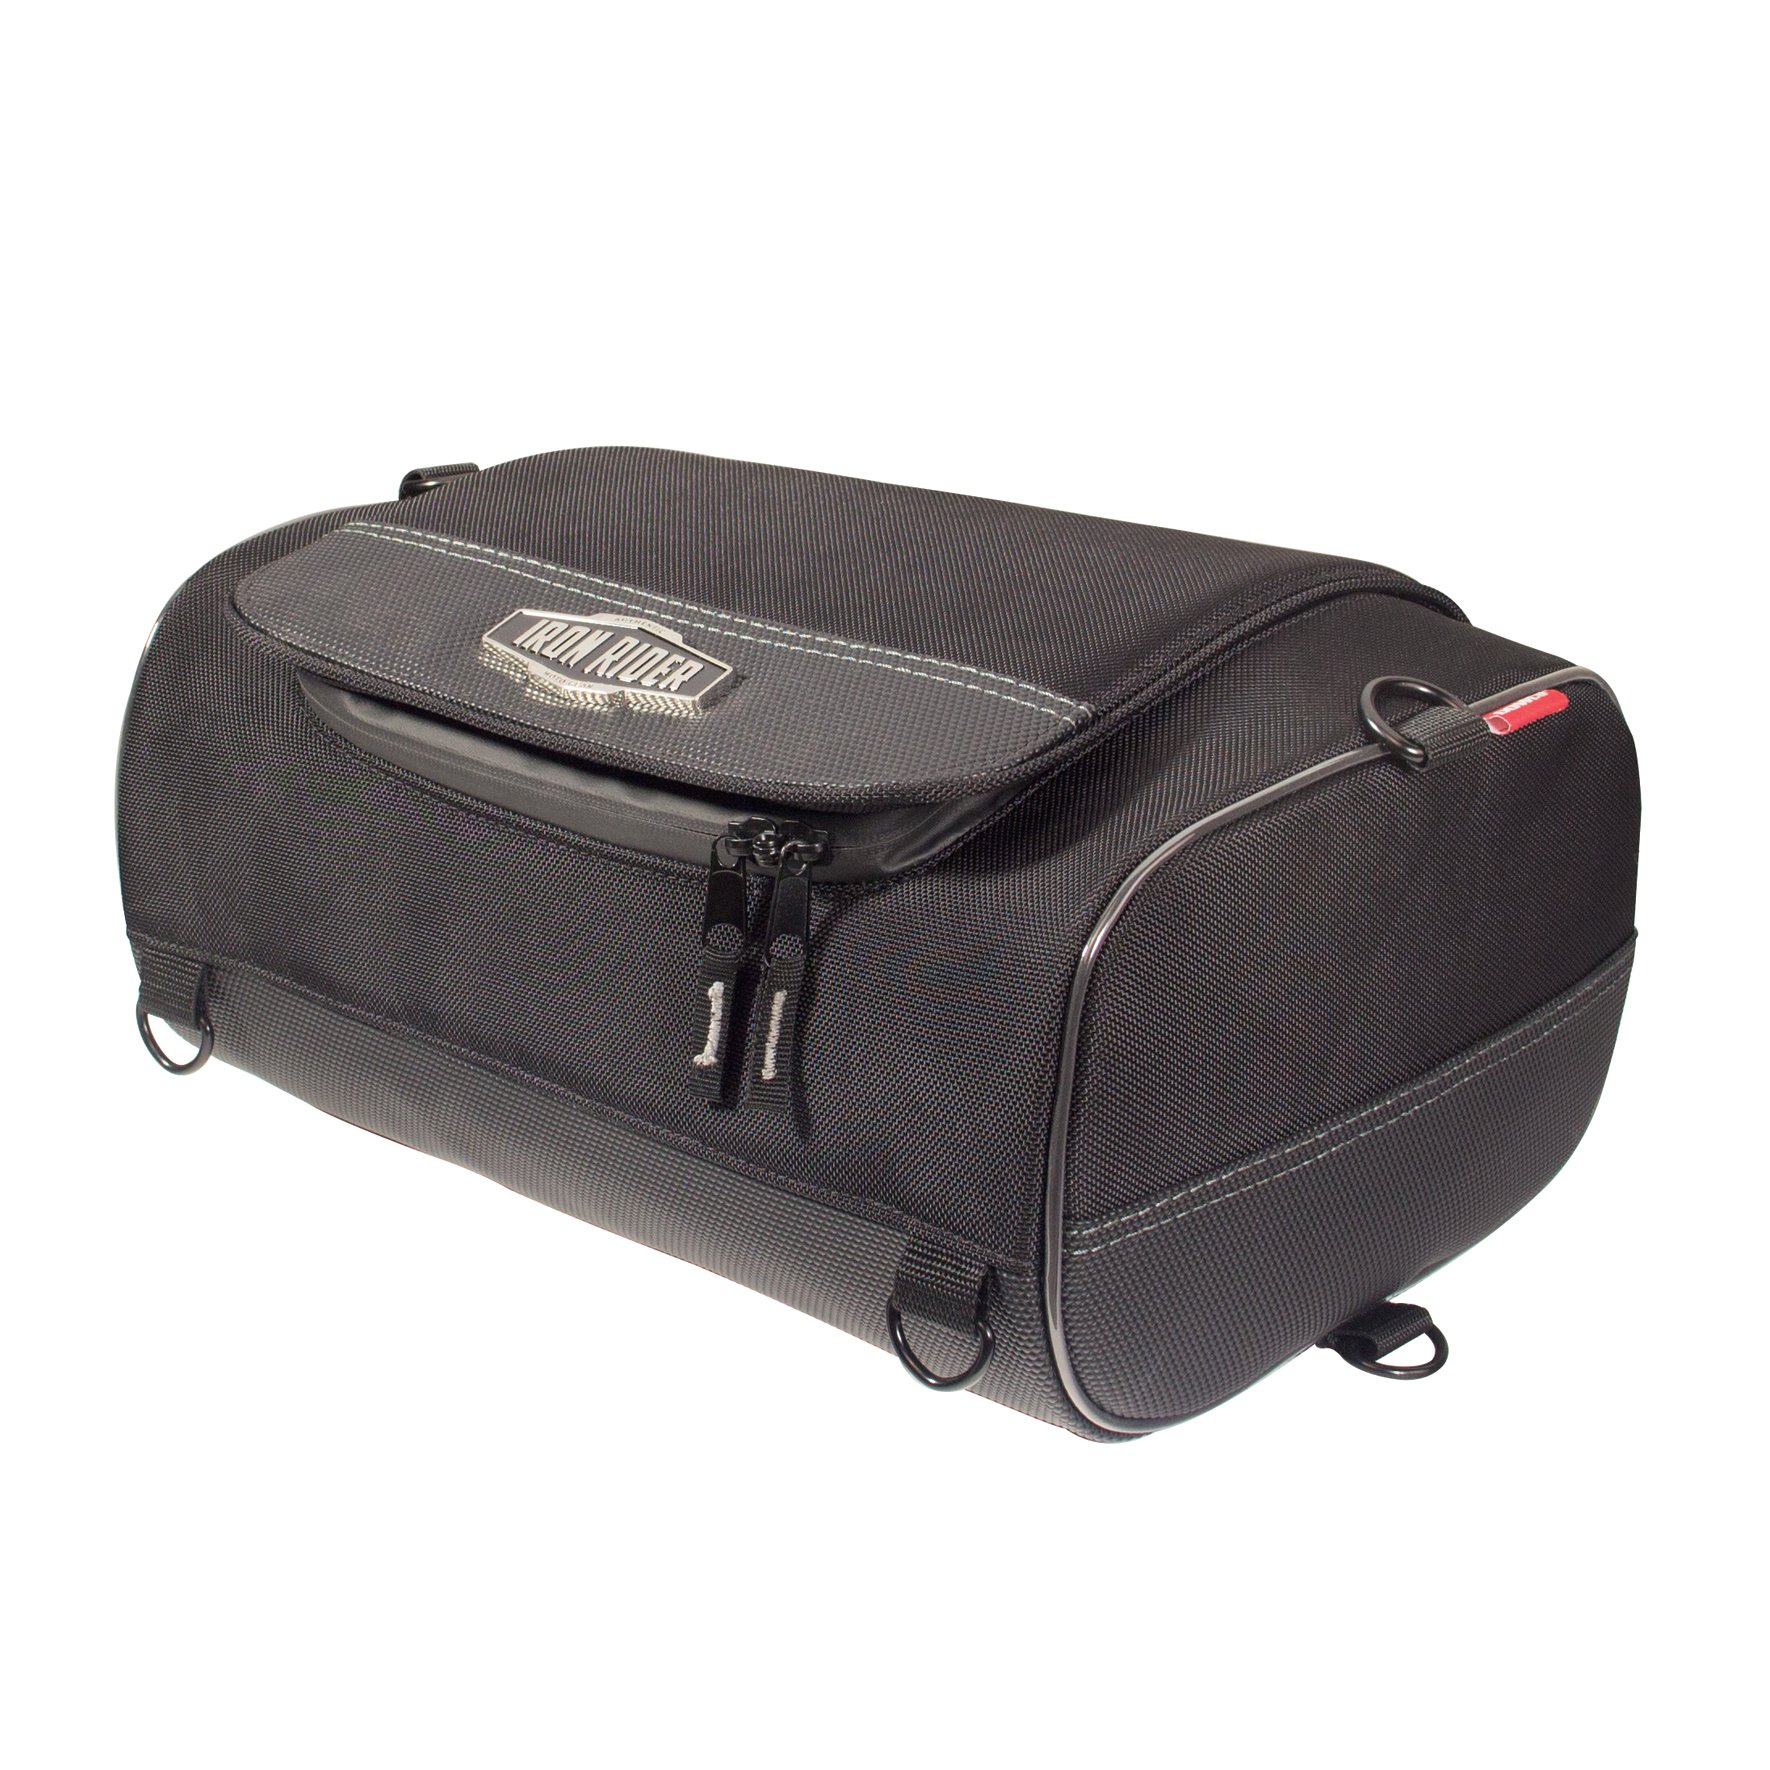 Dowco Iron Rider by 50127-00 Water Resistant Reflective Motorcycle Roll Bag: Black, Small, 15 Liter Capacity